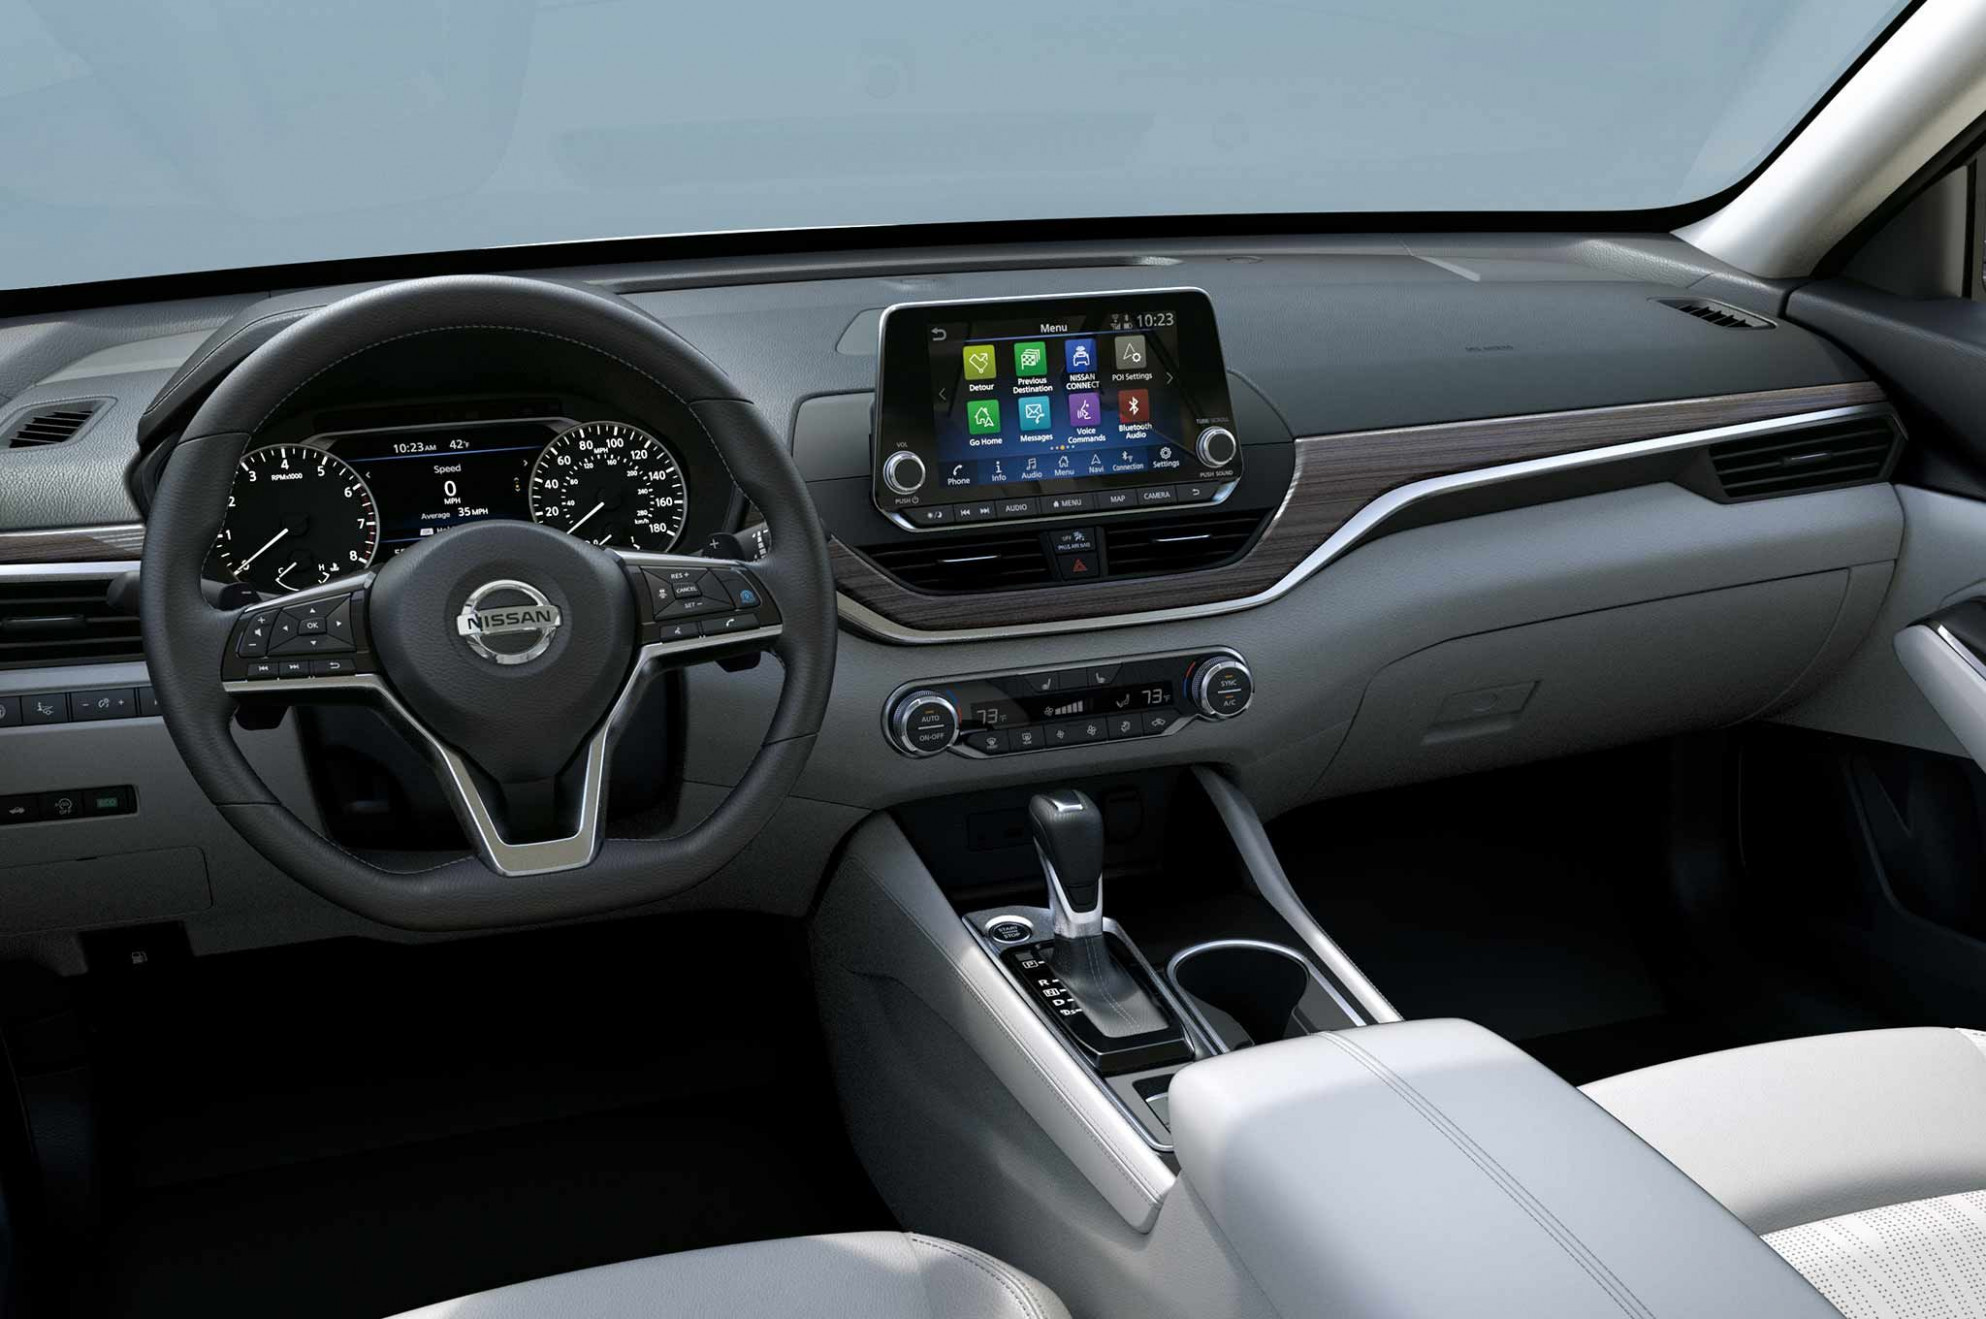 Wallpaper 2022 Nissan Altima Interior